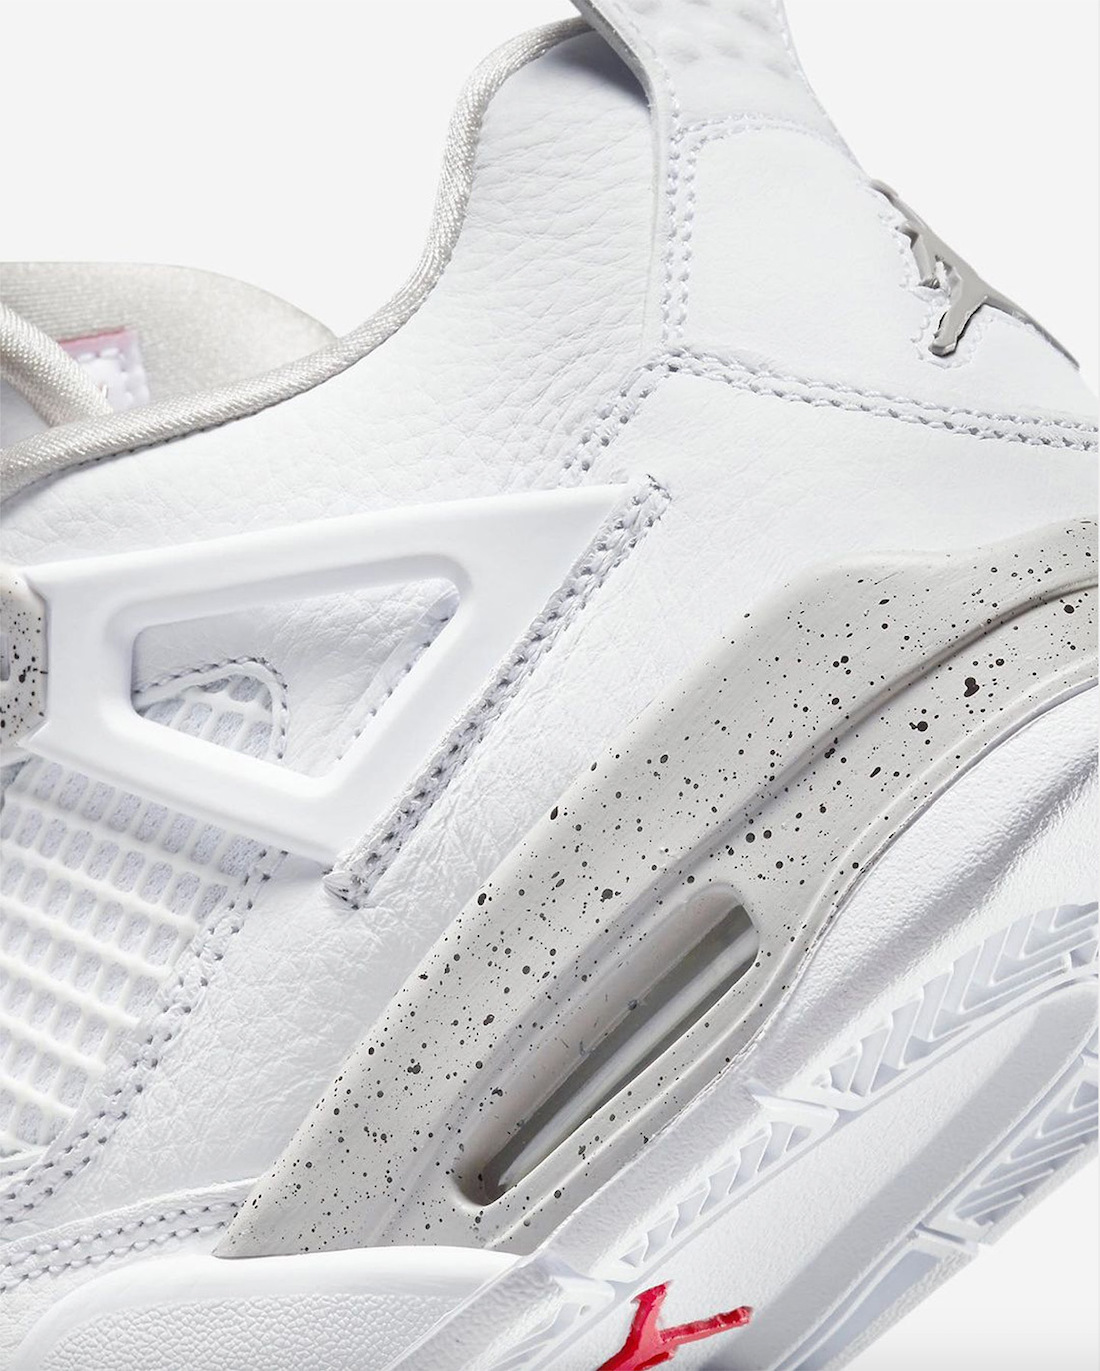 Air Jordan 4 White Oreo GS Release Date